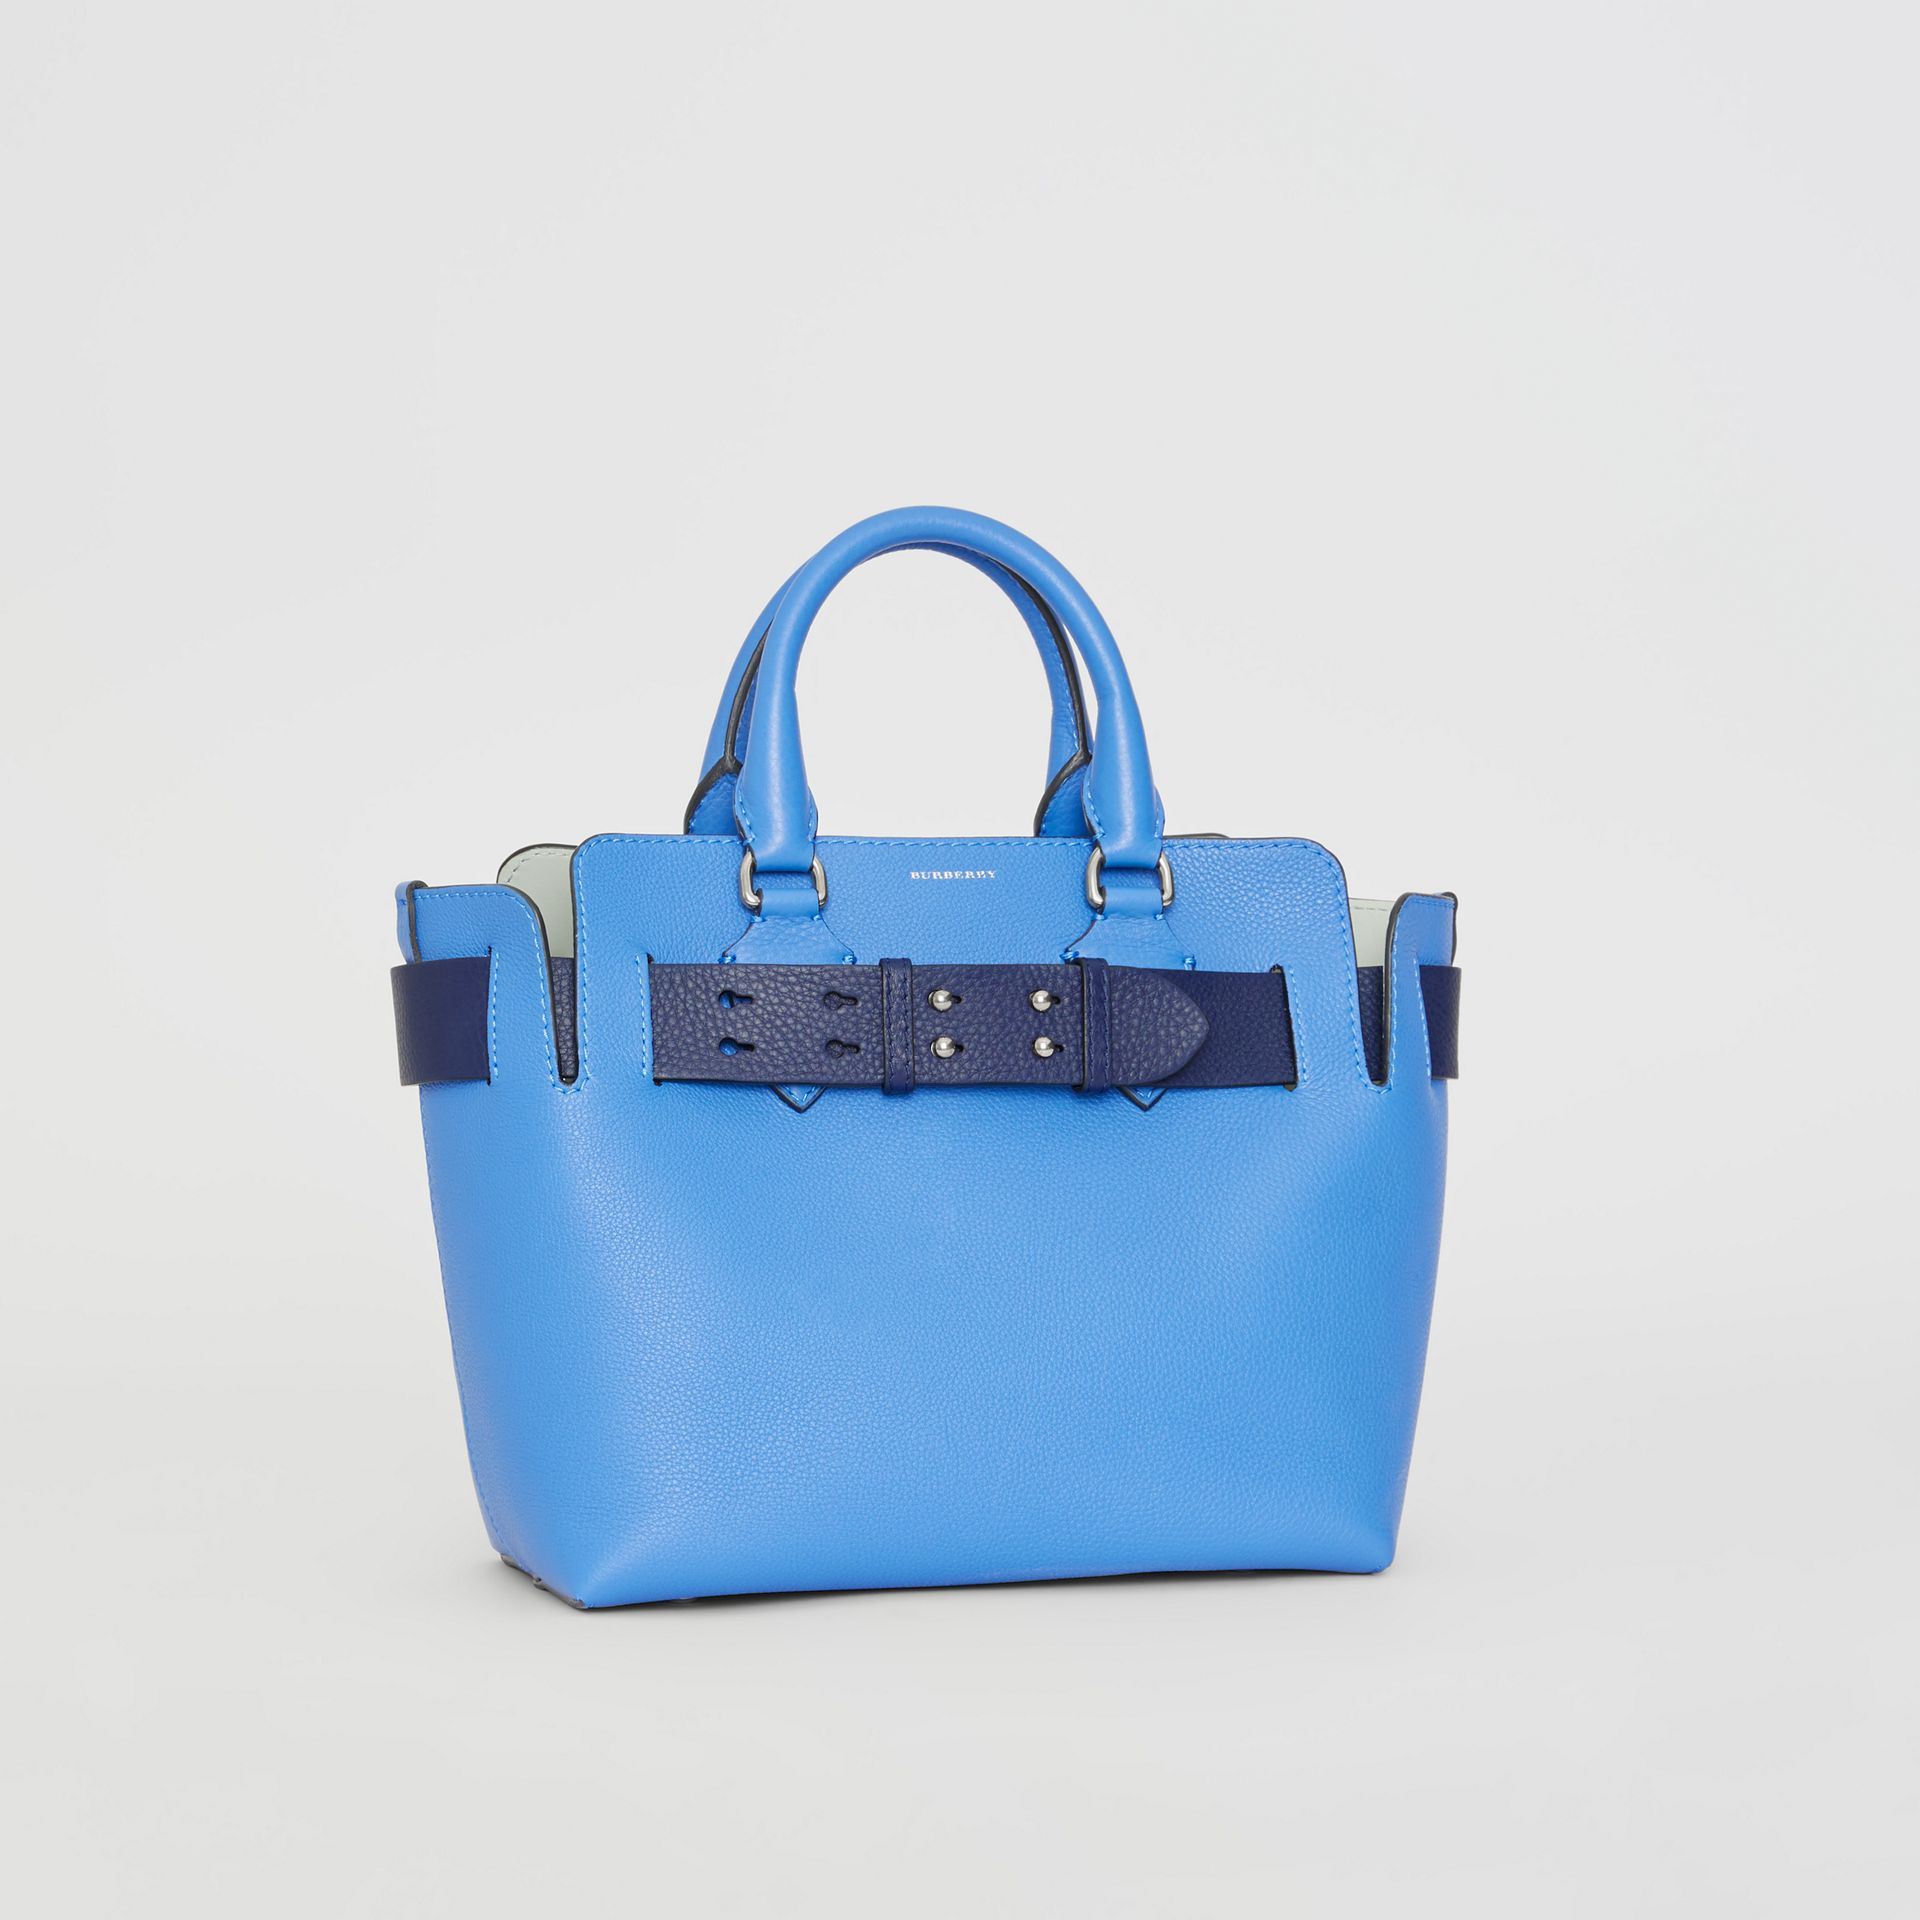 Petit sac The Belt en cuir (Bleu Hortensia) - Femme | Burberry Canada - photo de la galerie 6